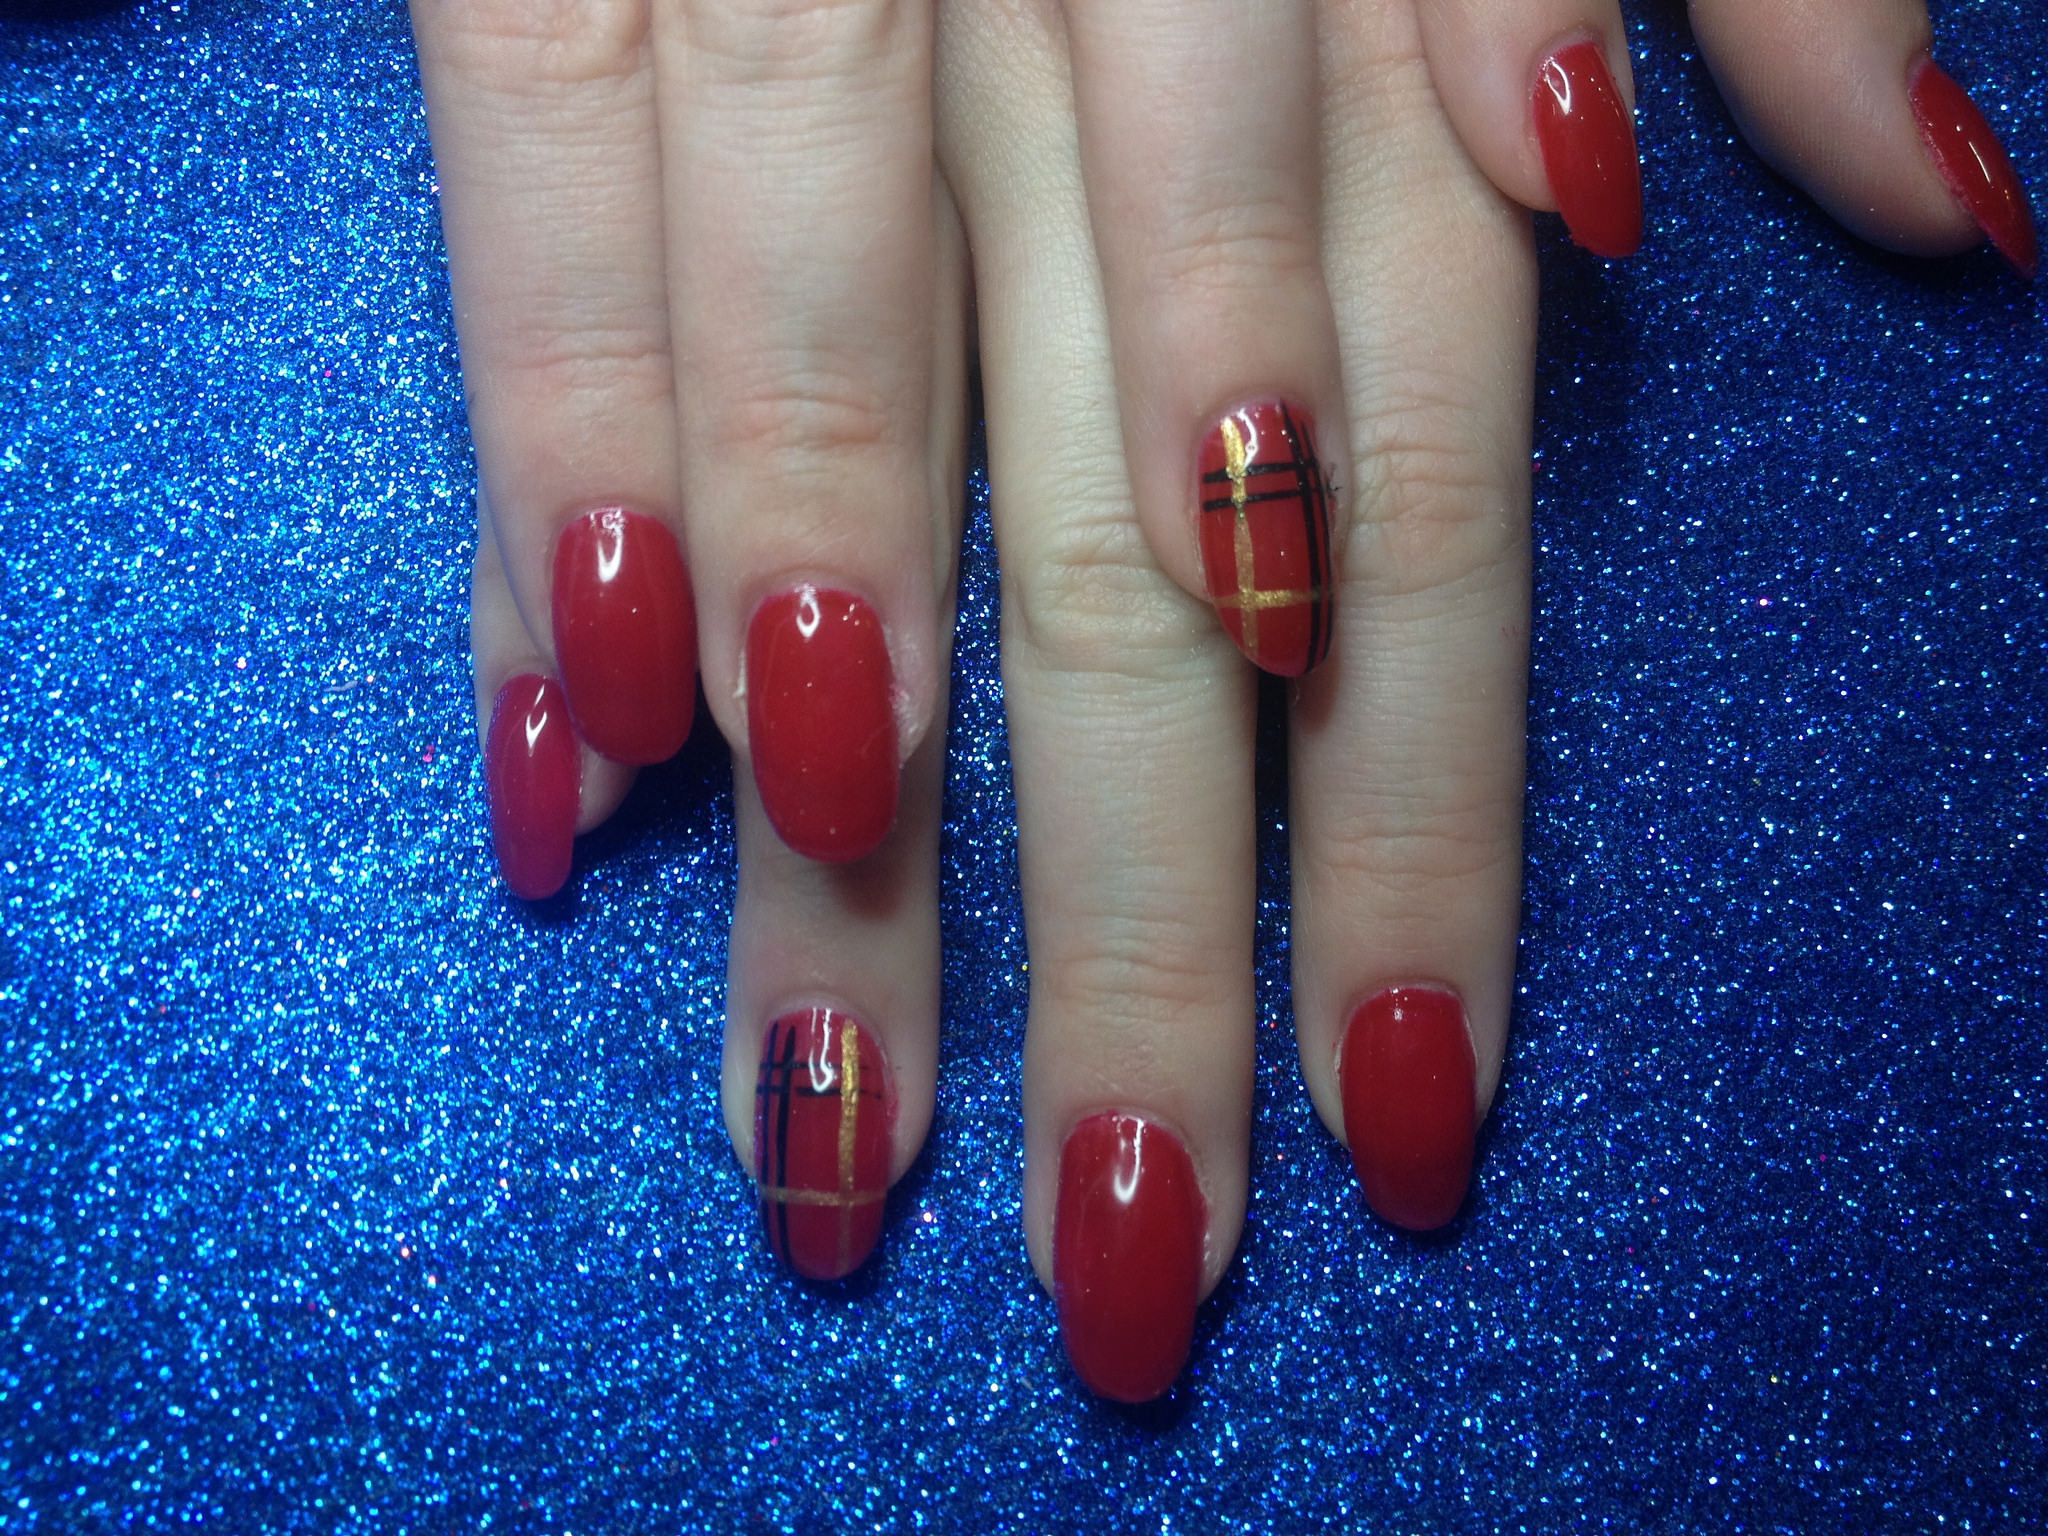 Red Shiny Acrylic Nail Design